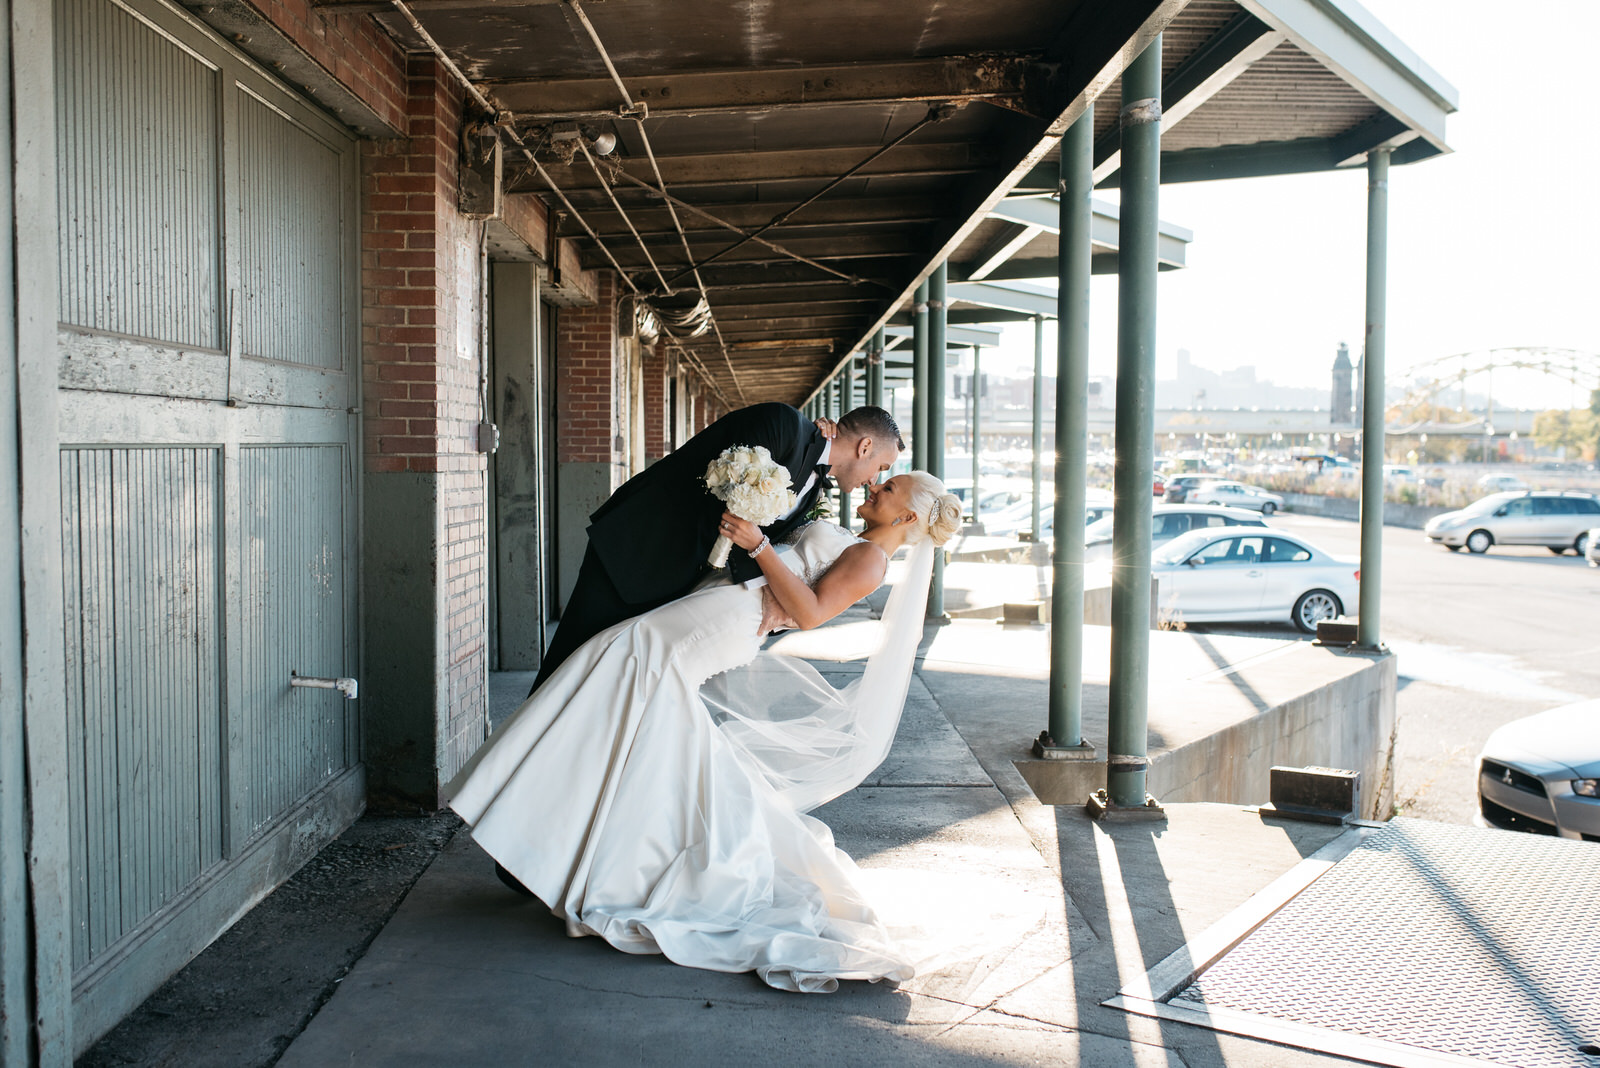 hilton_garden_inn_southpointe_pittsburgh_weddings_63.jpg